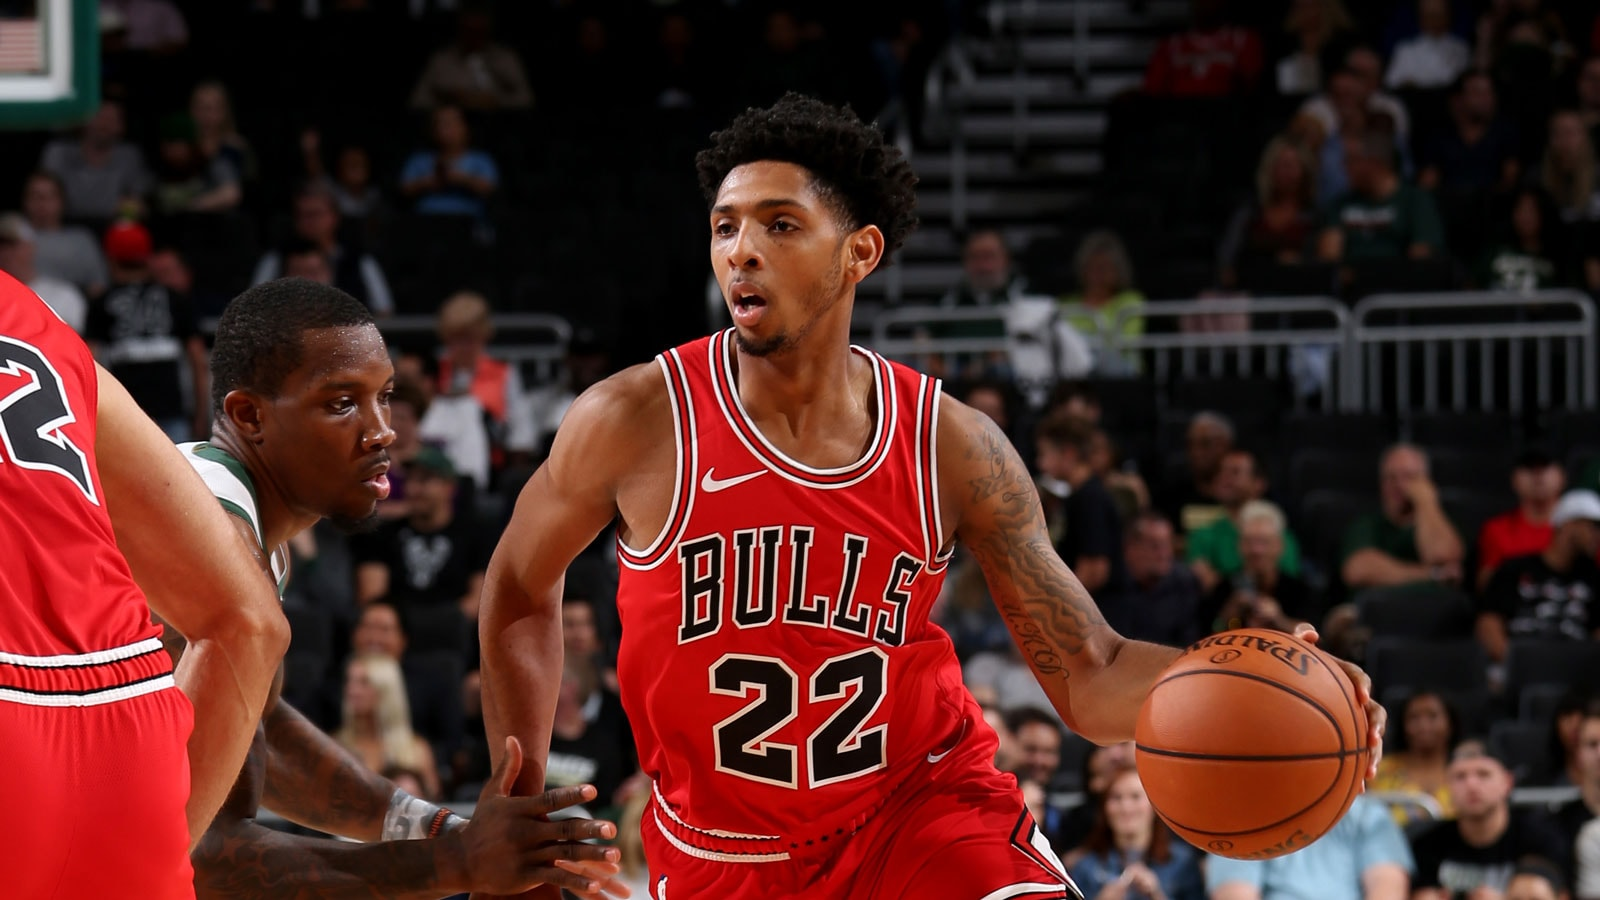 Cameron Payne starts in season opener with Kris Dunn out